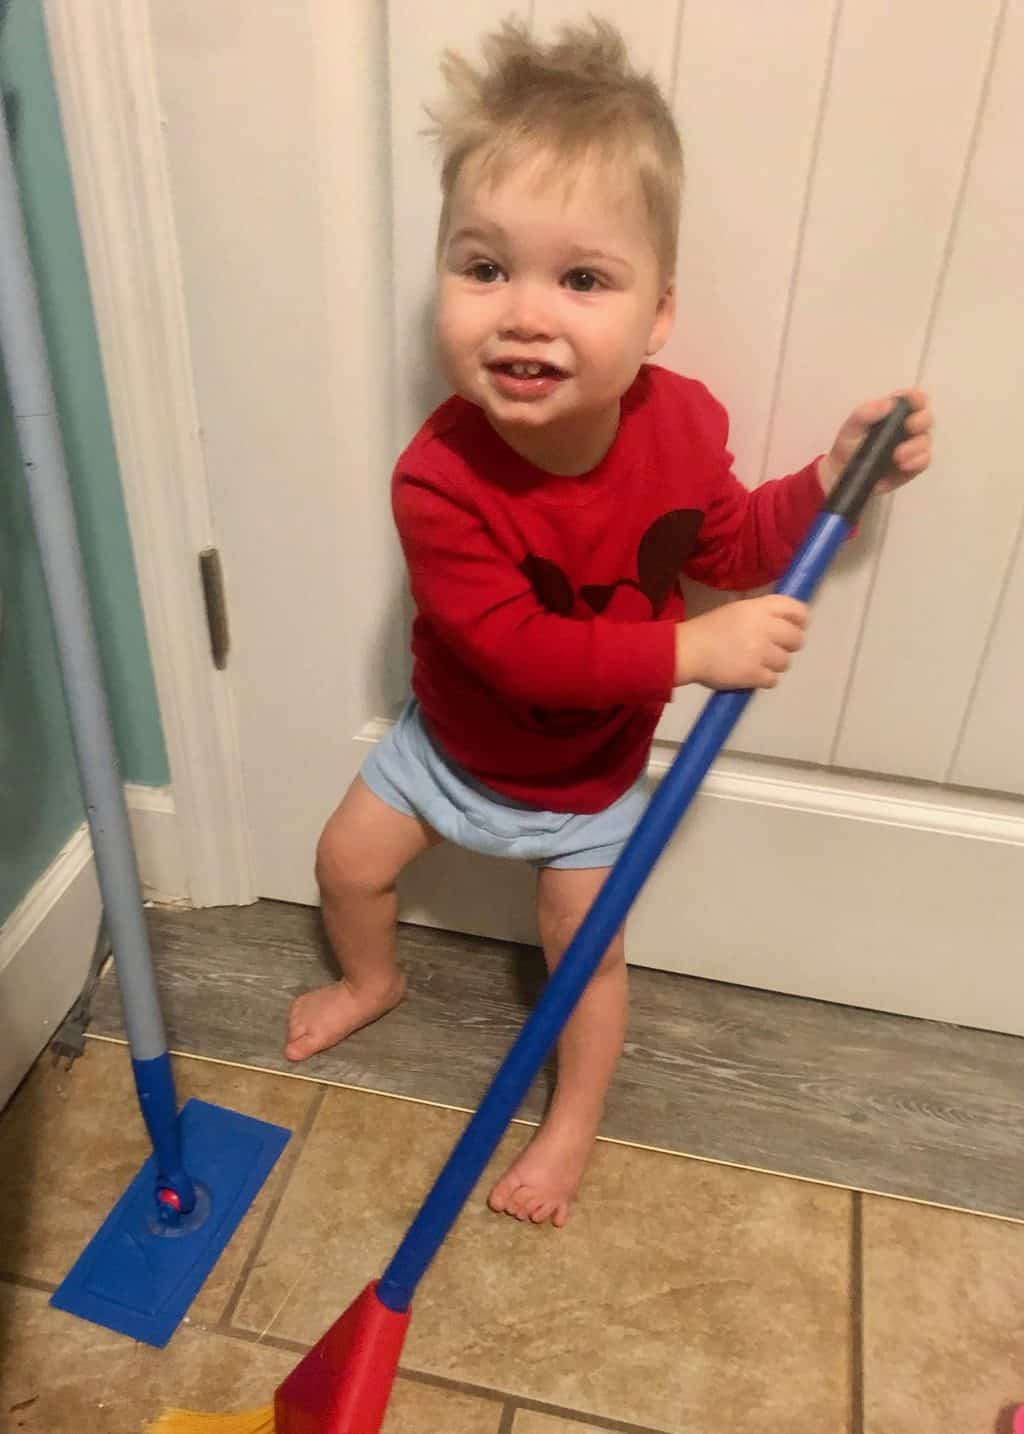 spear helping clean